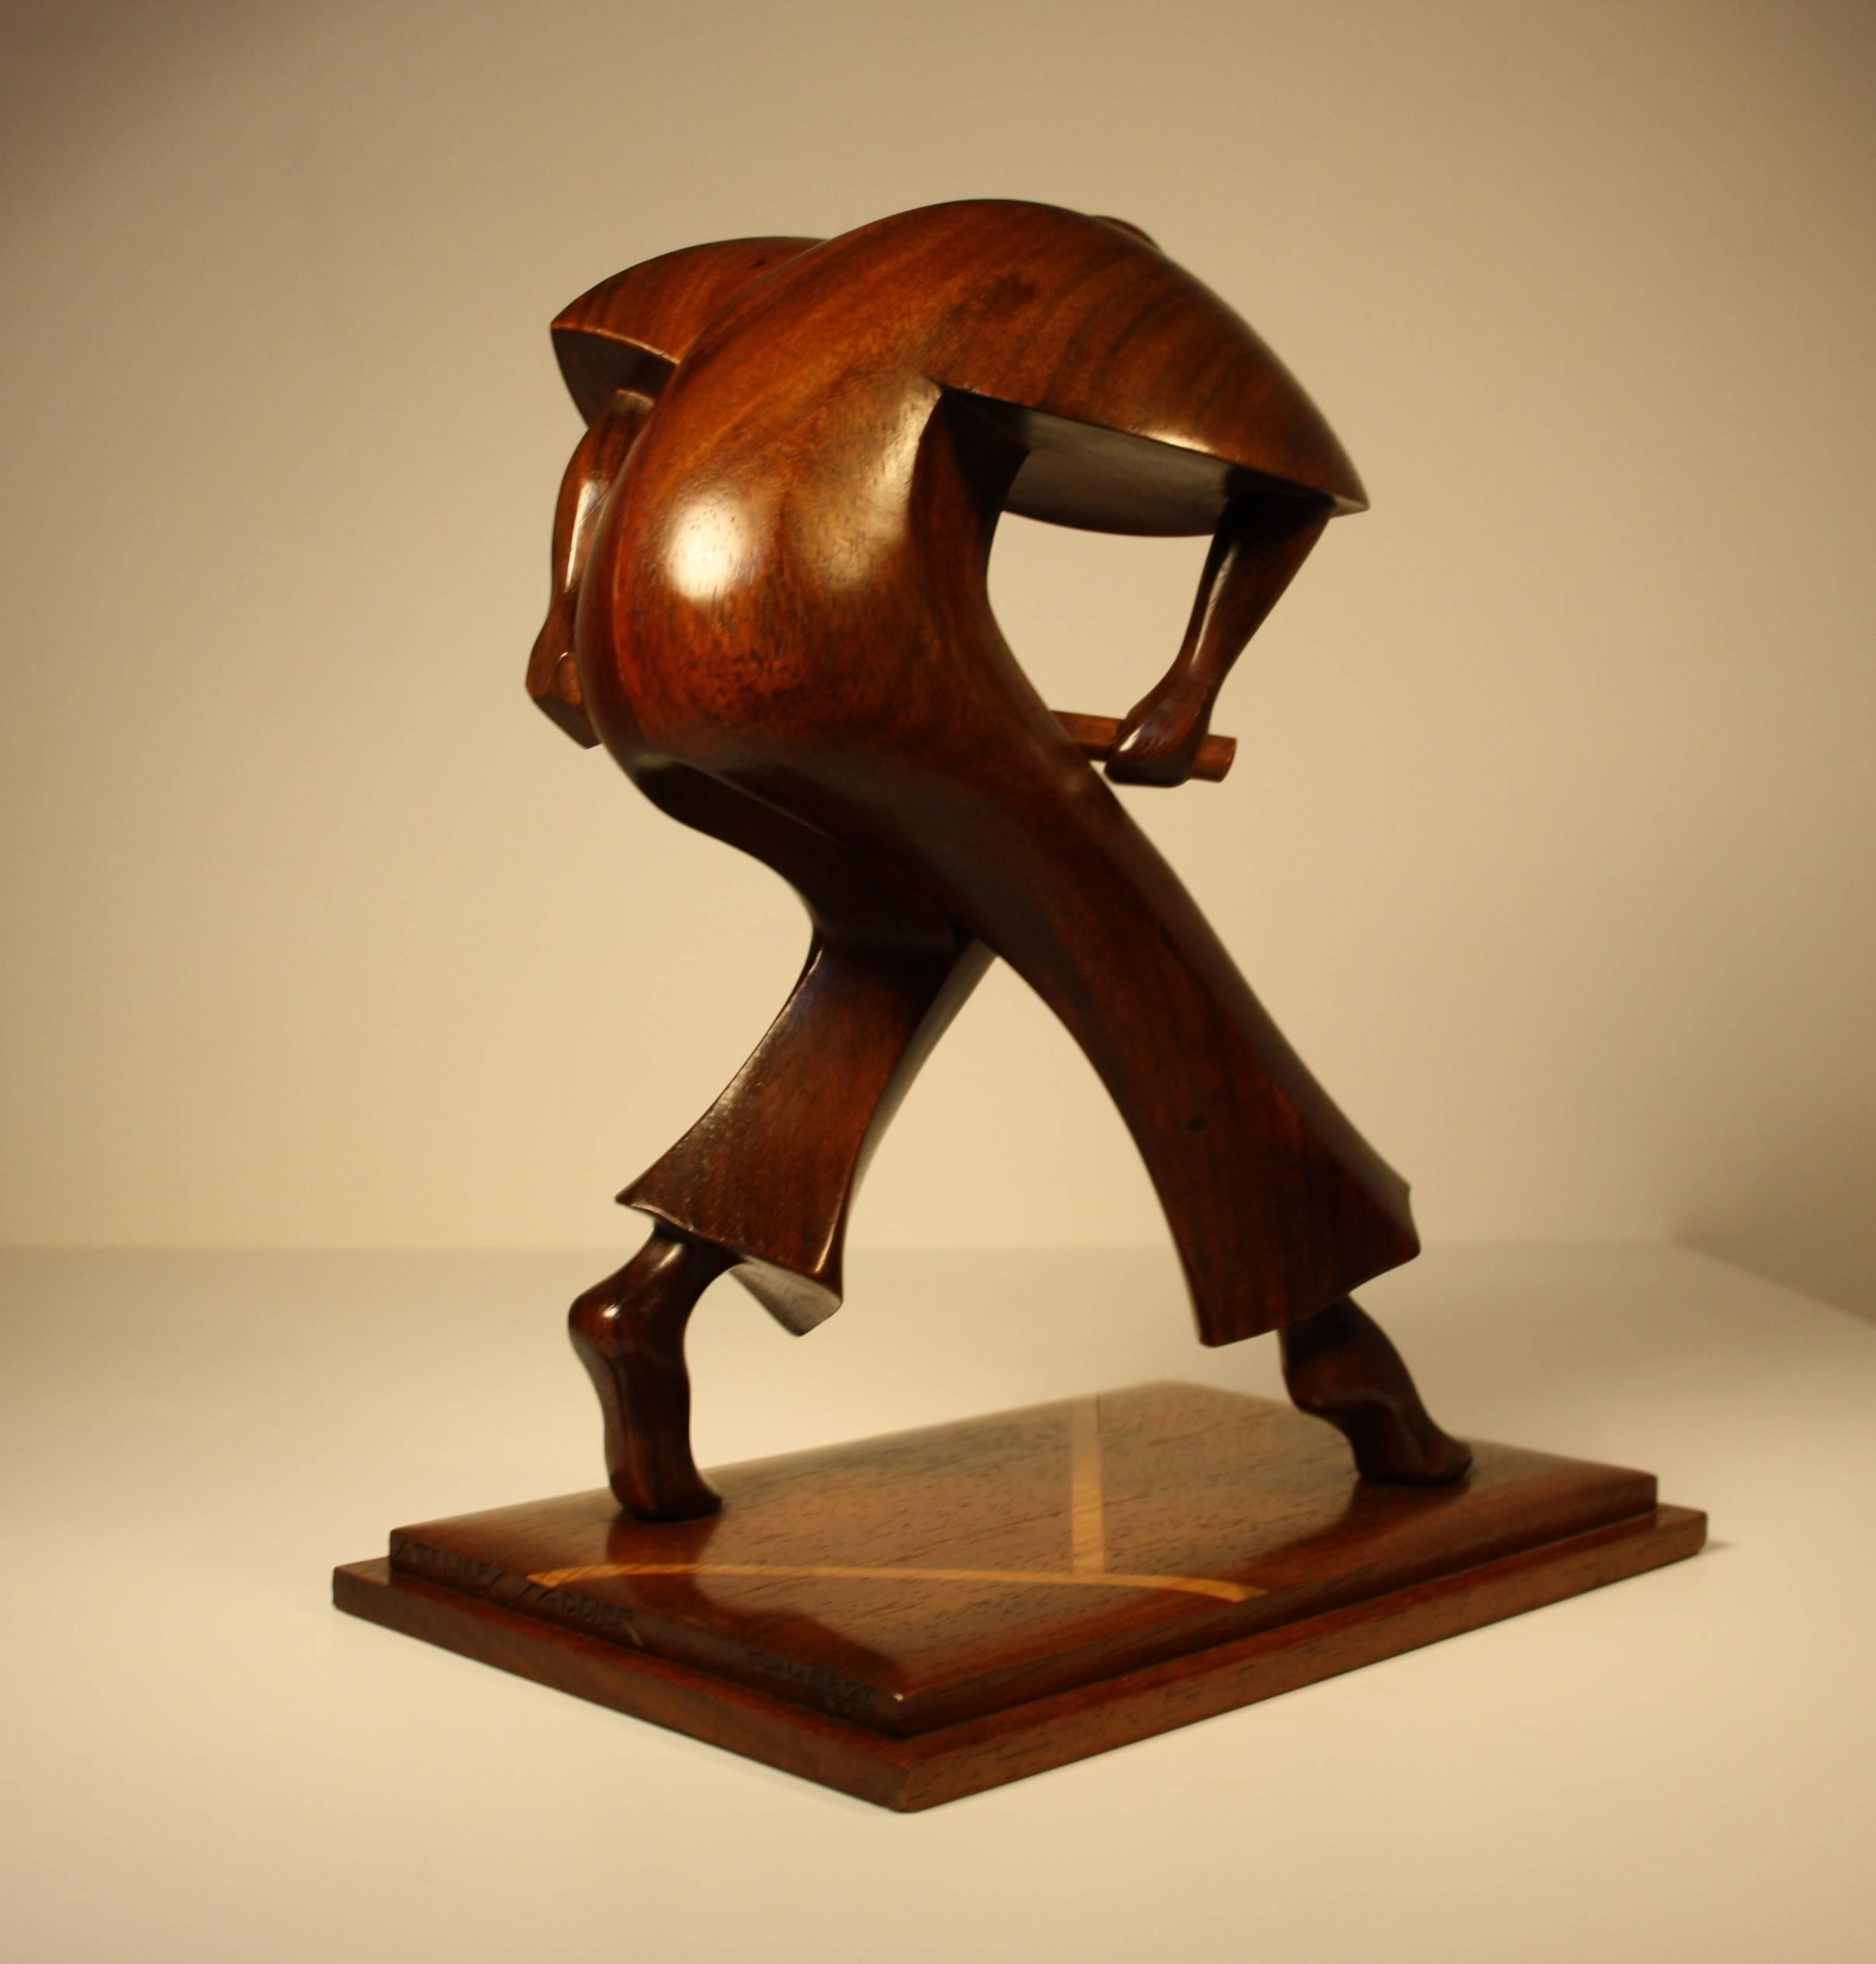 French Art Deco Sculpture of a Tennis Player, 1925 by Gaston and ...